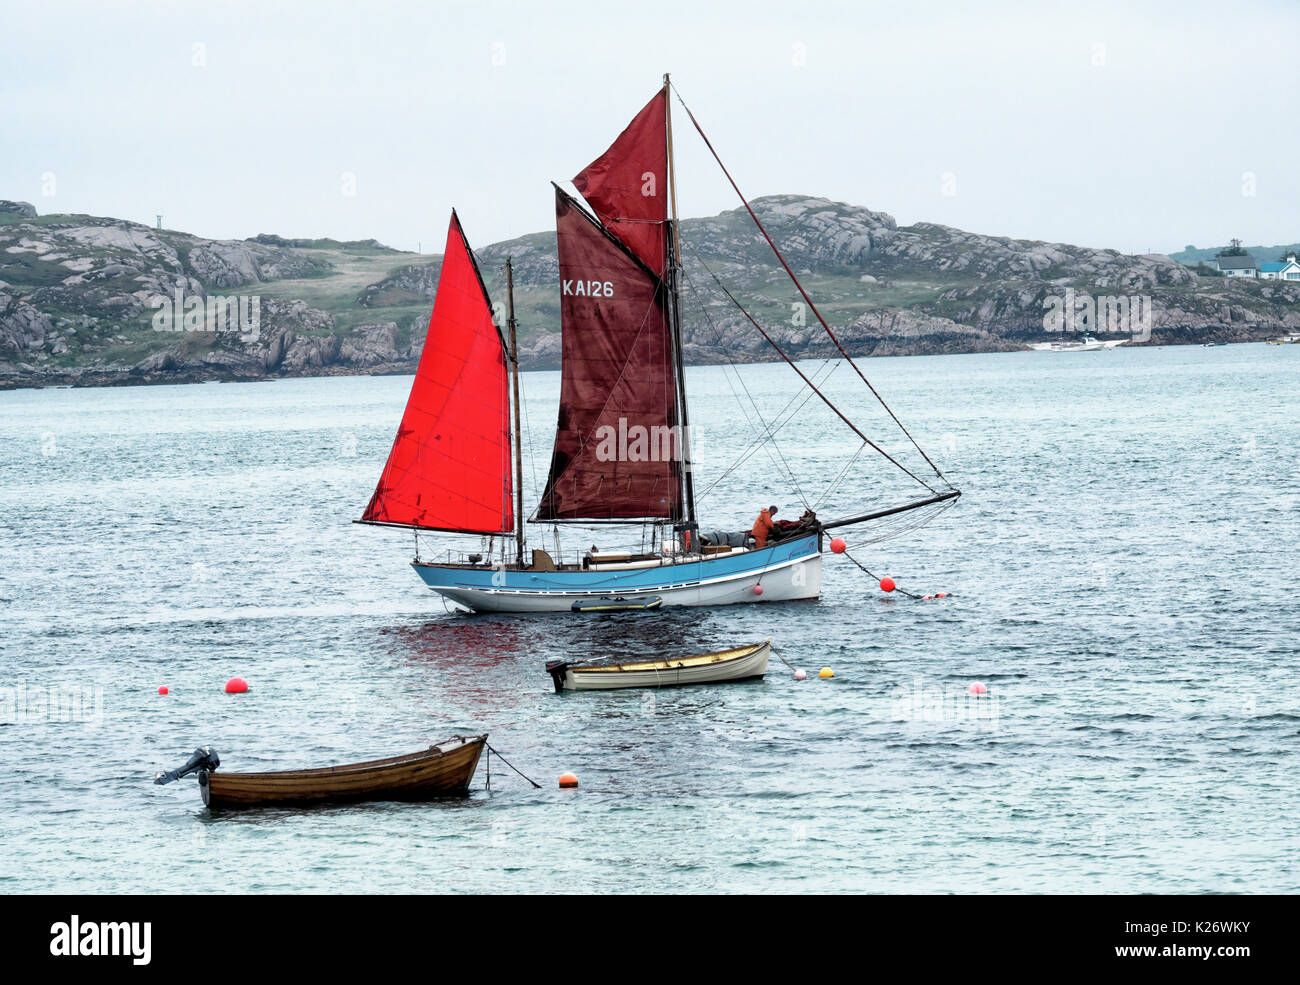 Sailing ship with red sails, Iona Island, Inner Hebrides, Scotland, United Kingdom - Stock Image